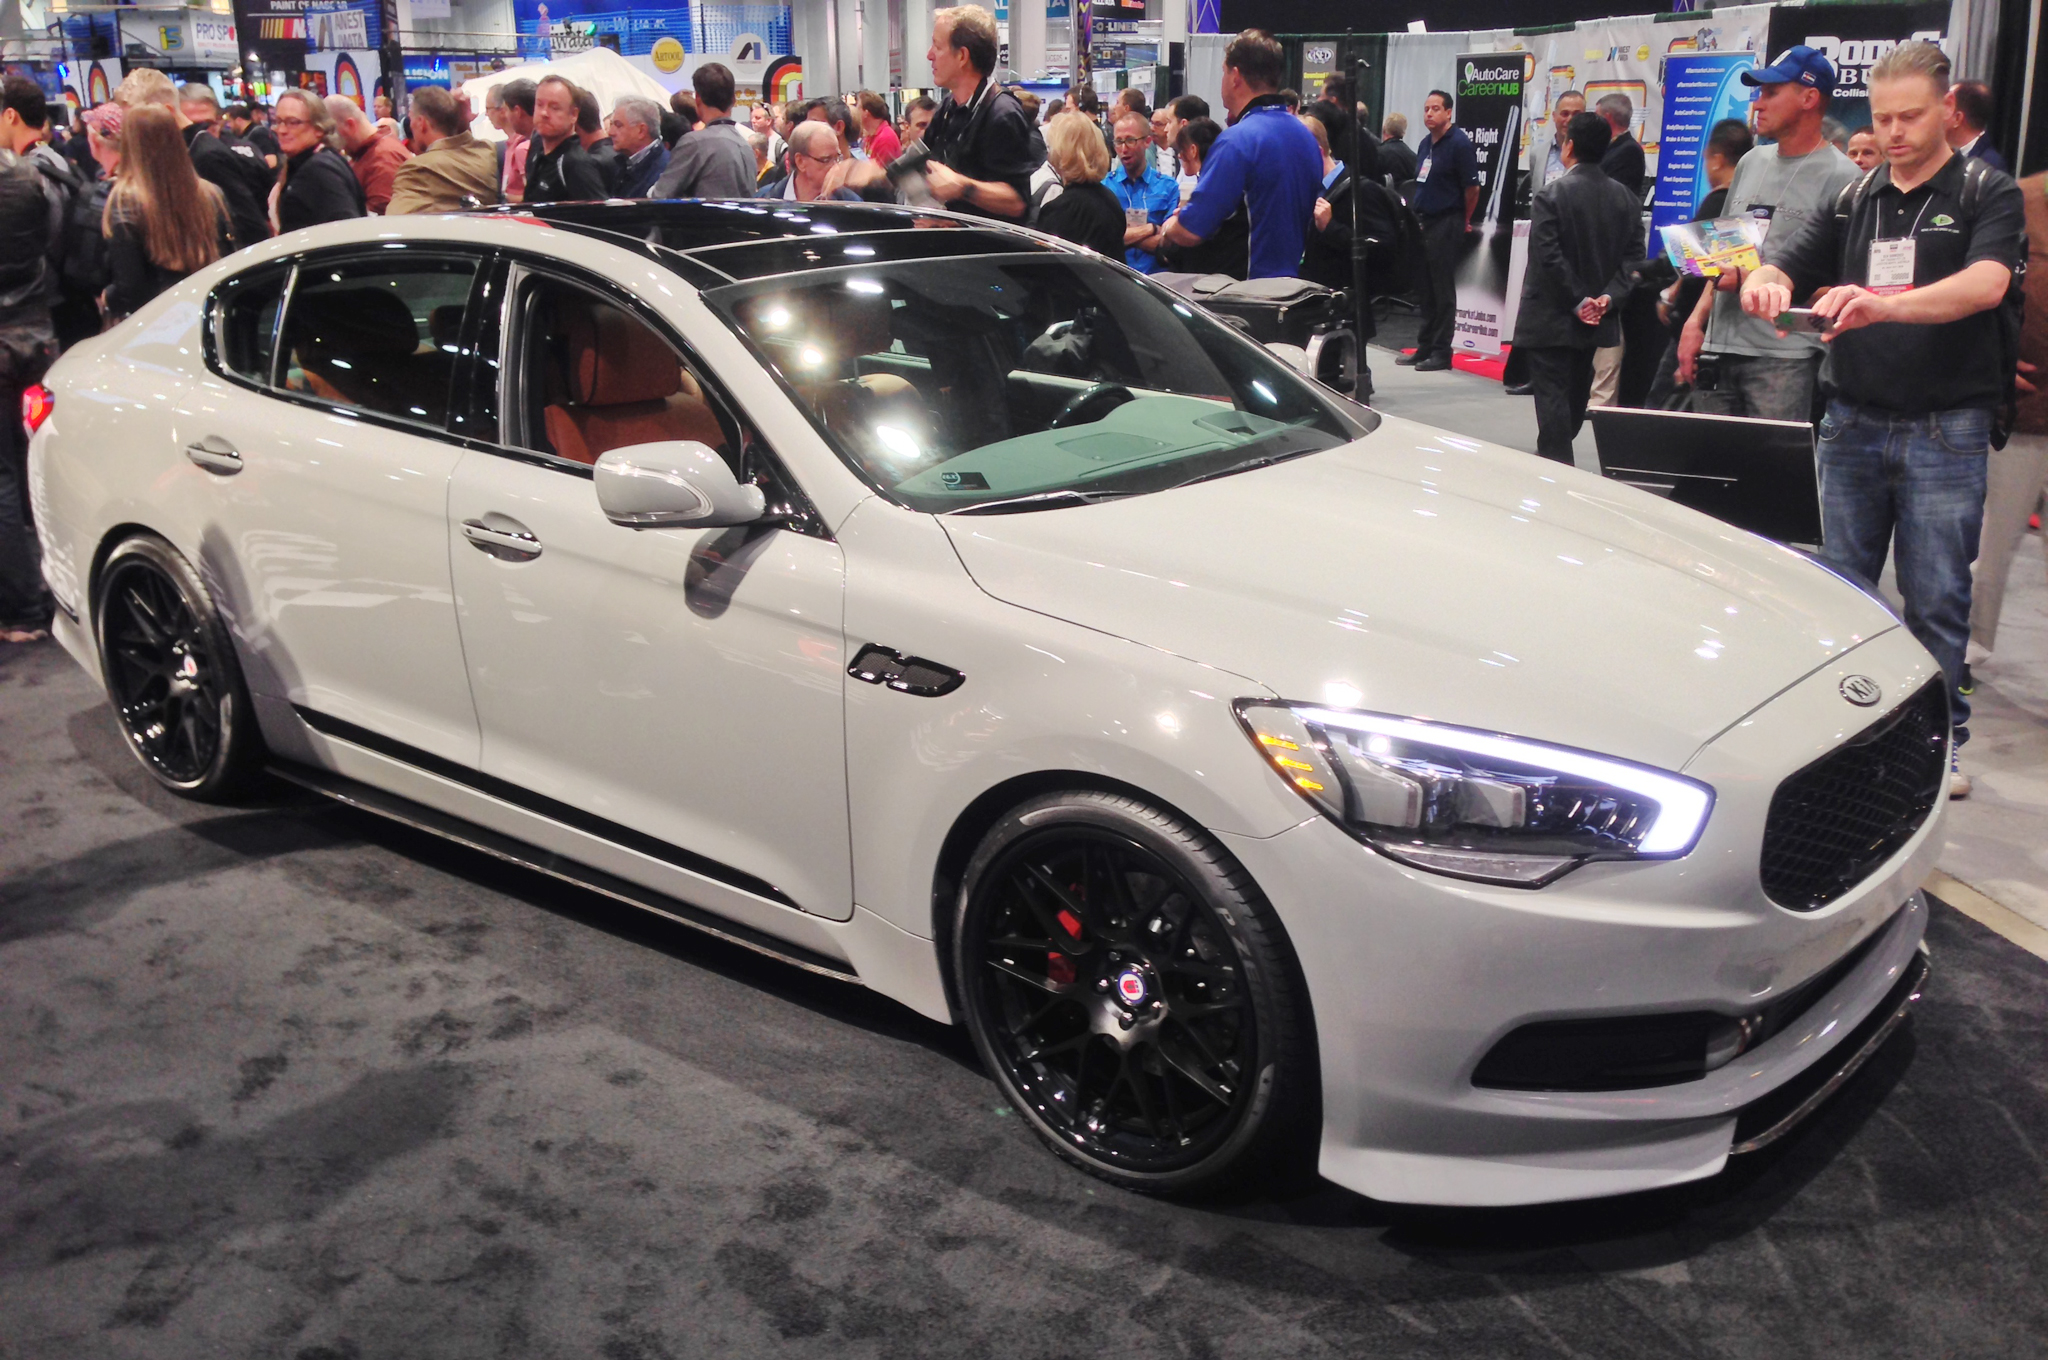 Kia at the 2014 SEMA Show: 5 Things to Know